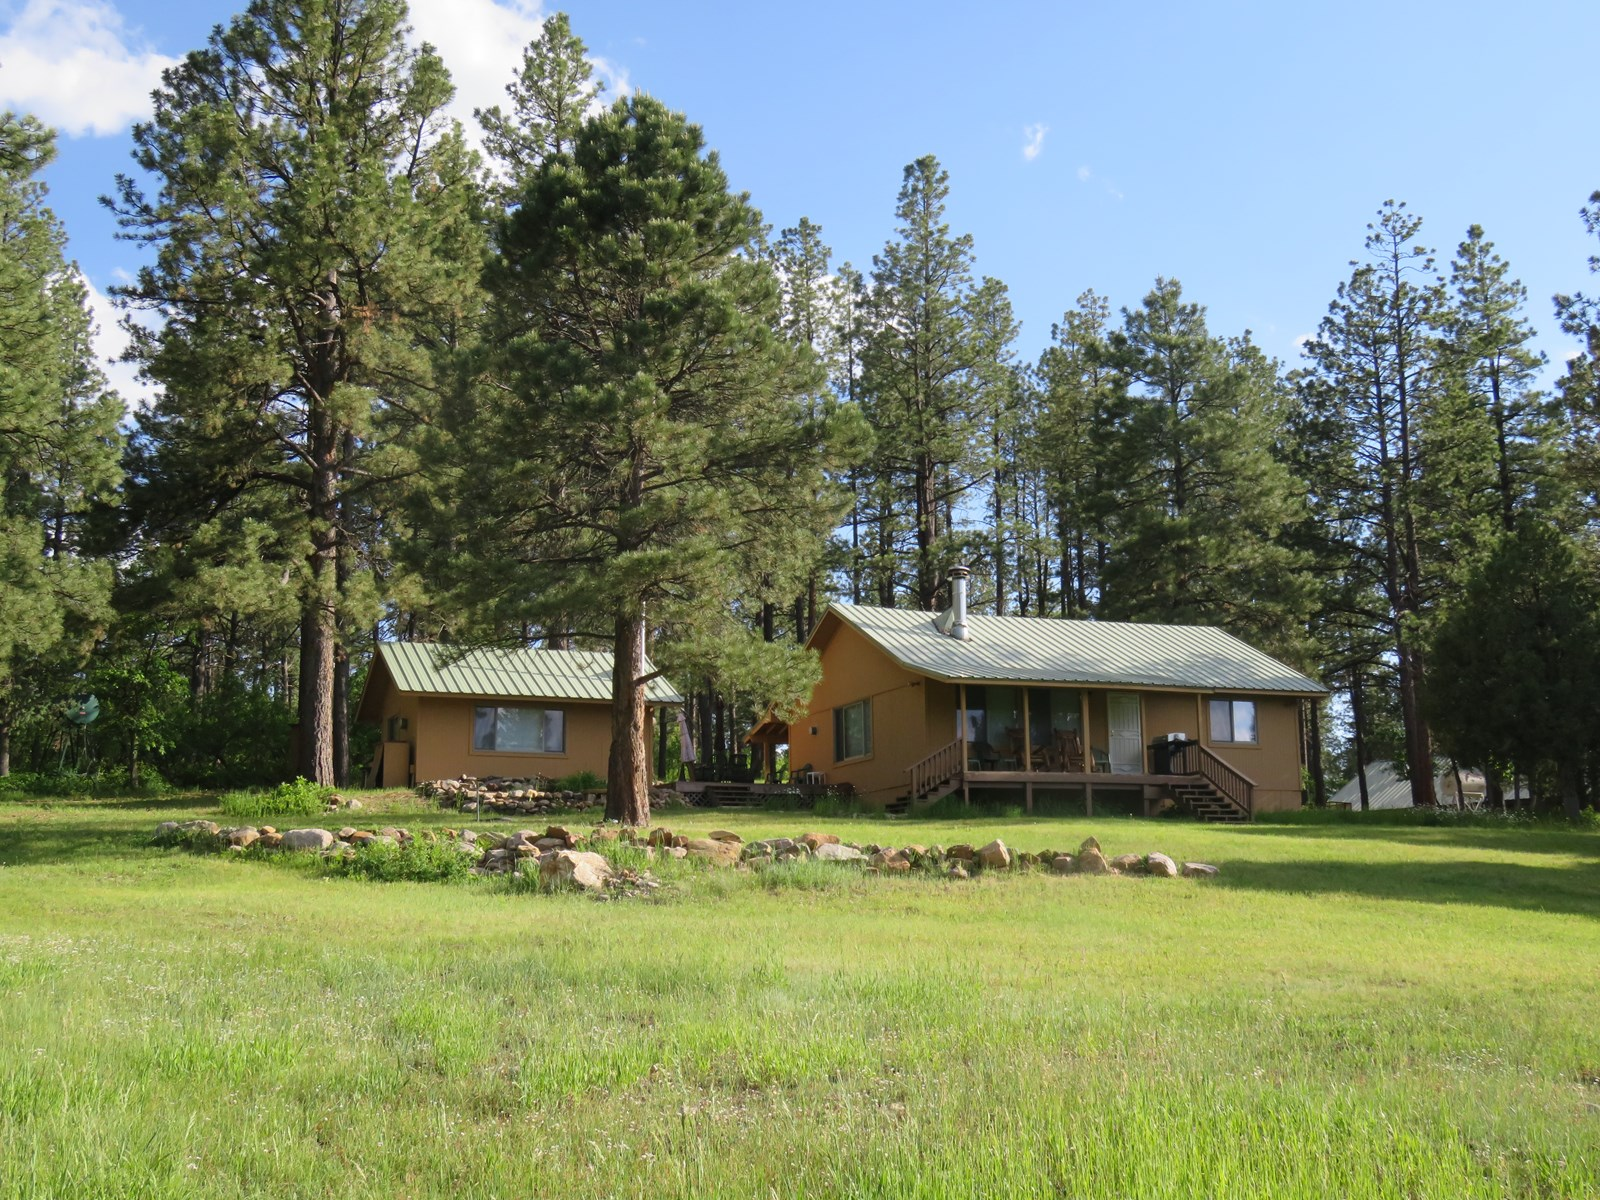 Chama NM Hunting Ranch for Sale with Cabin and Waterfront